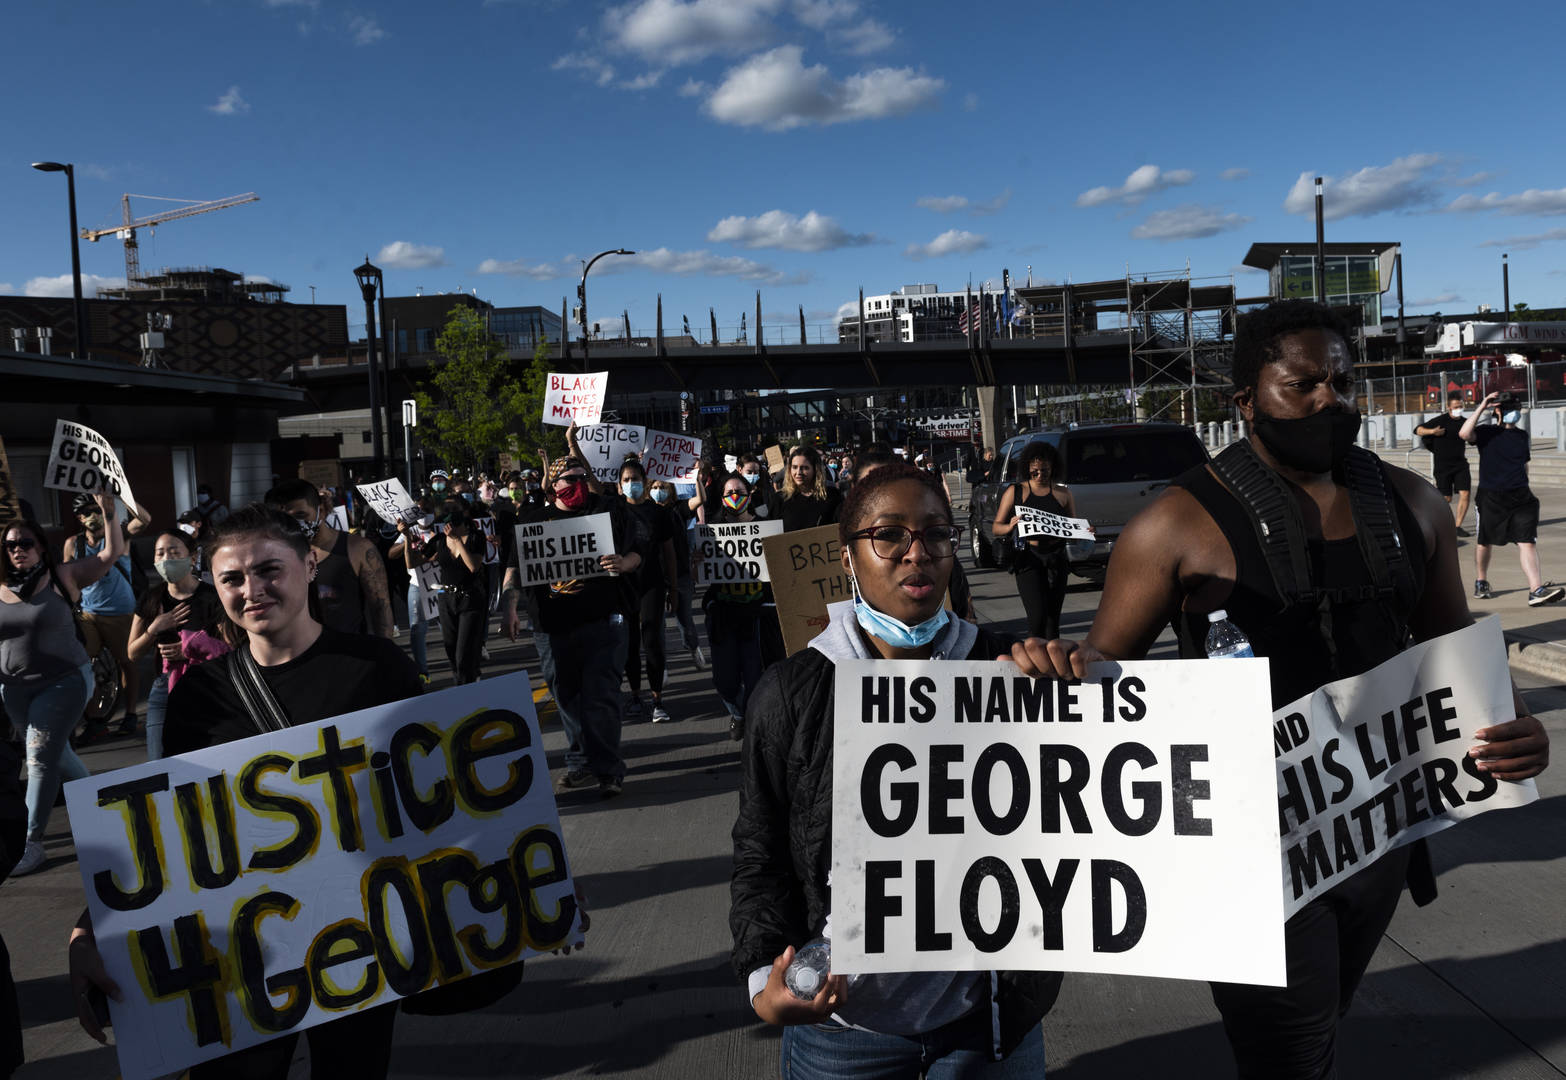 BabyNames.com, George Floyd, Protests, BLM